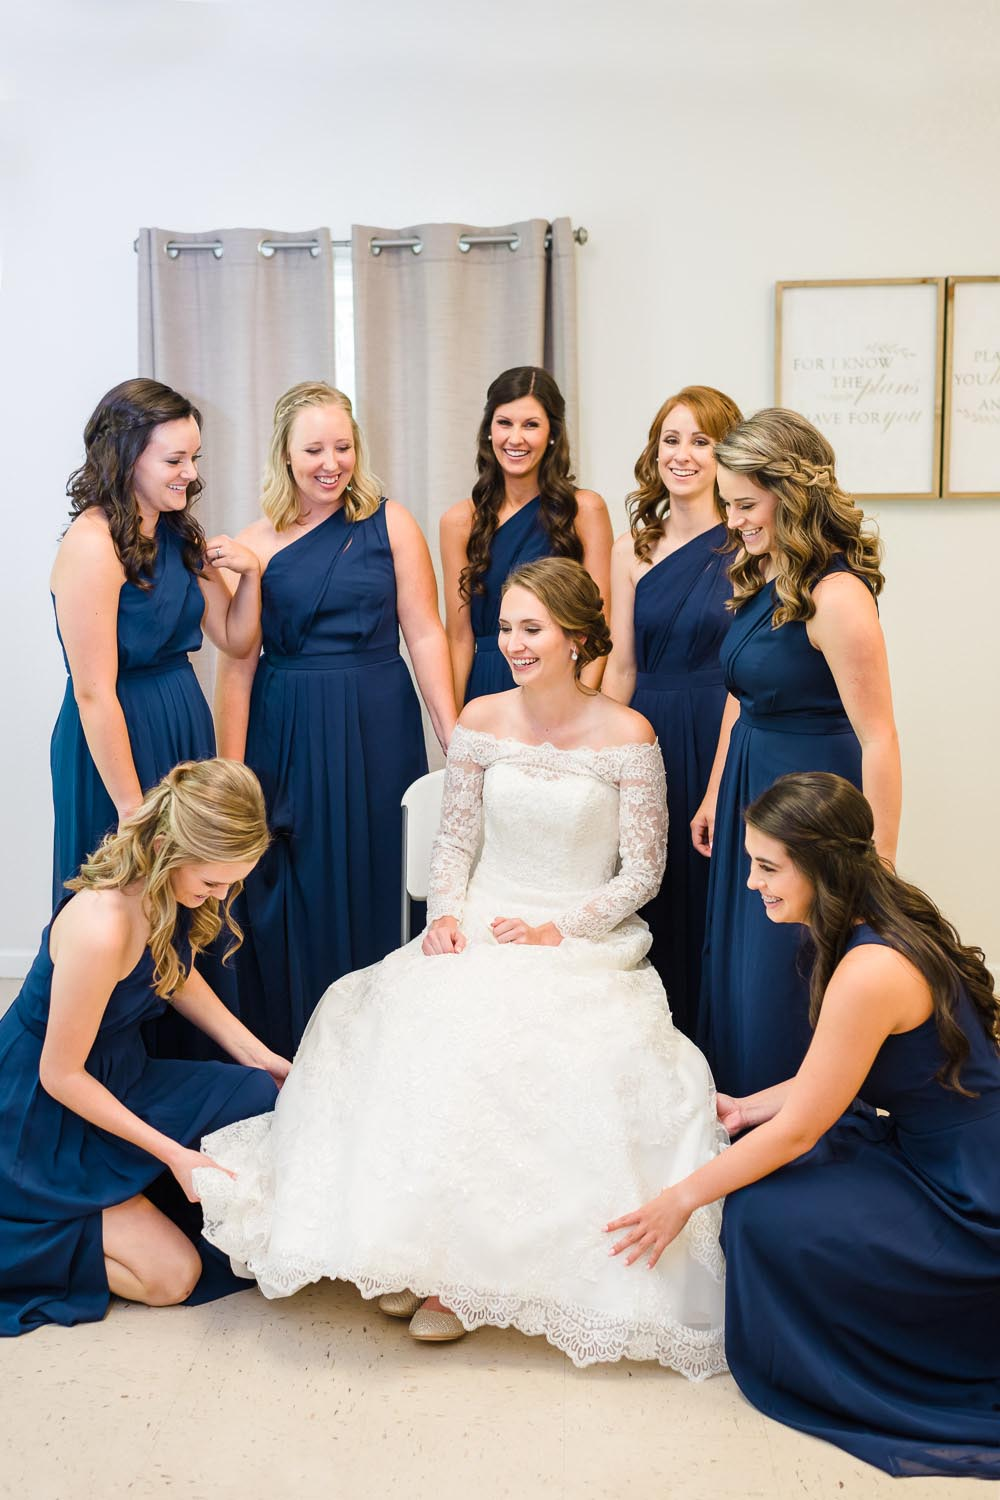 bride sitting with bridesmaids in navy dresses around her getting readdy and adjusting her dress in Gatlinburg TN